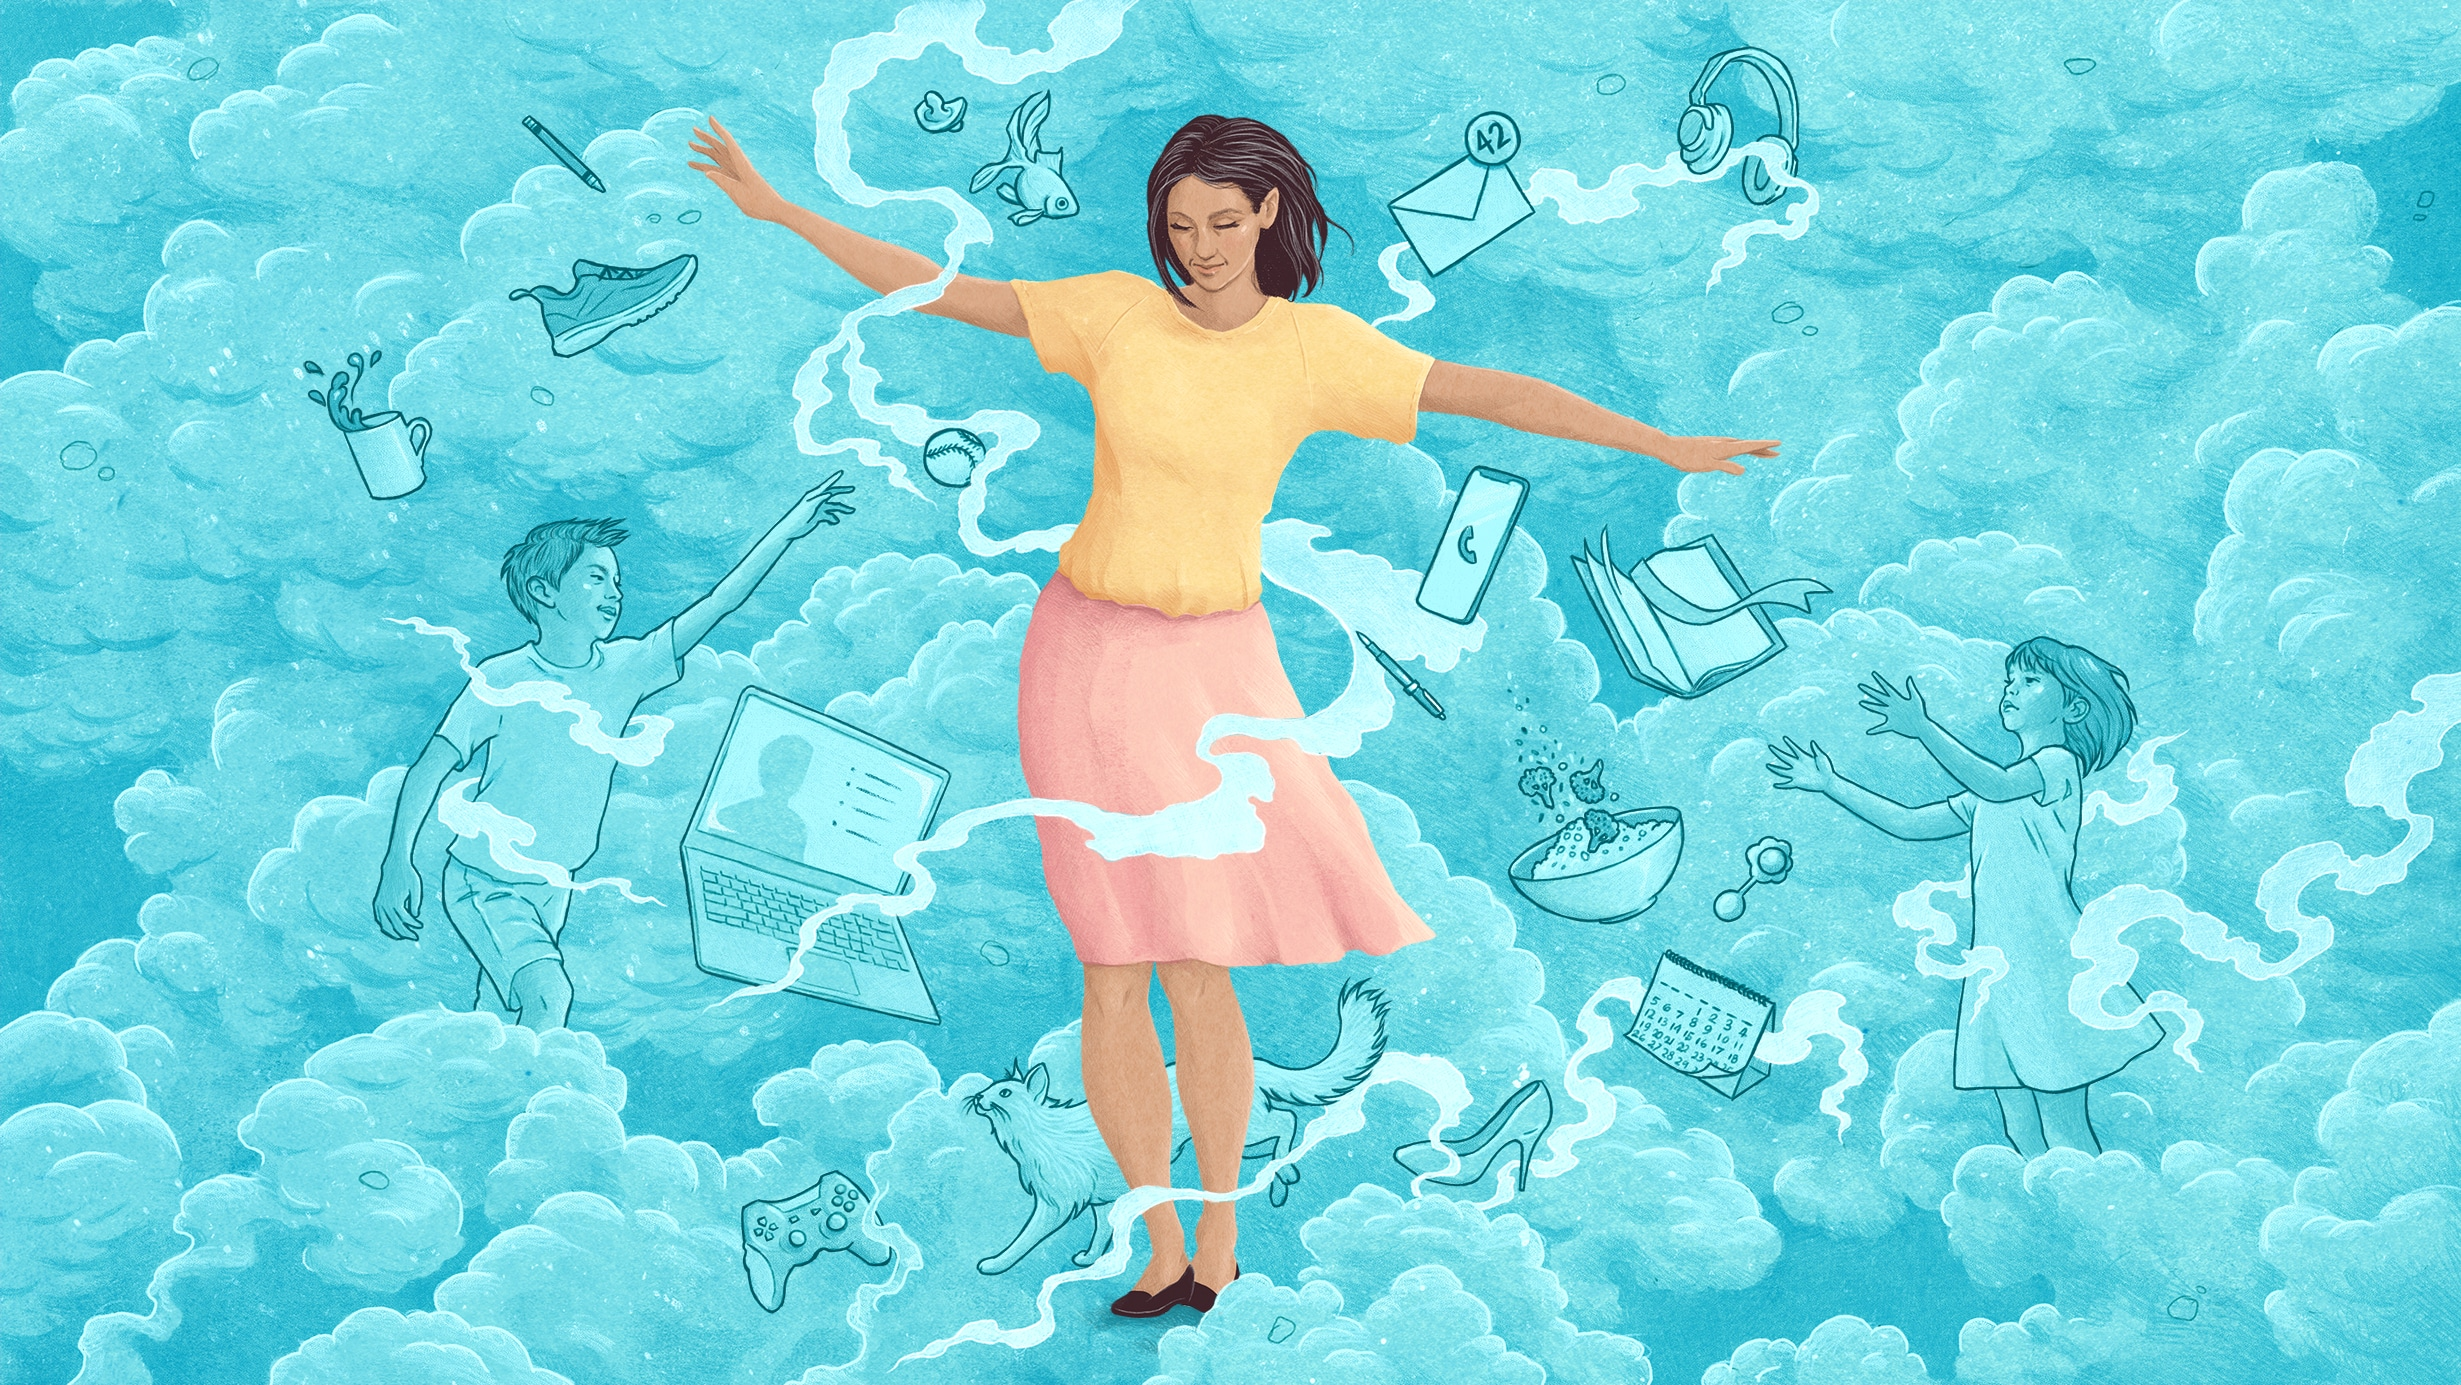 Middle aged woman navigating through swirling clouds that contain important things in her life; children, pets, work, leisure items.